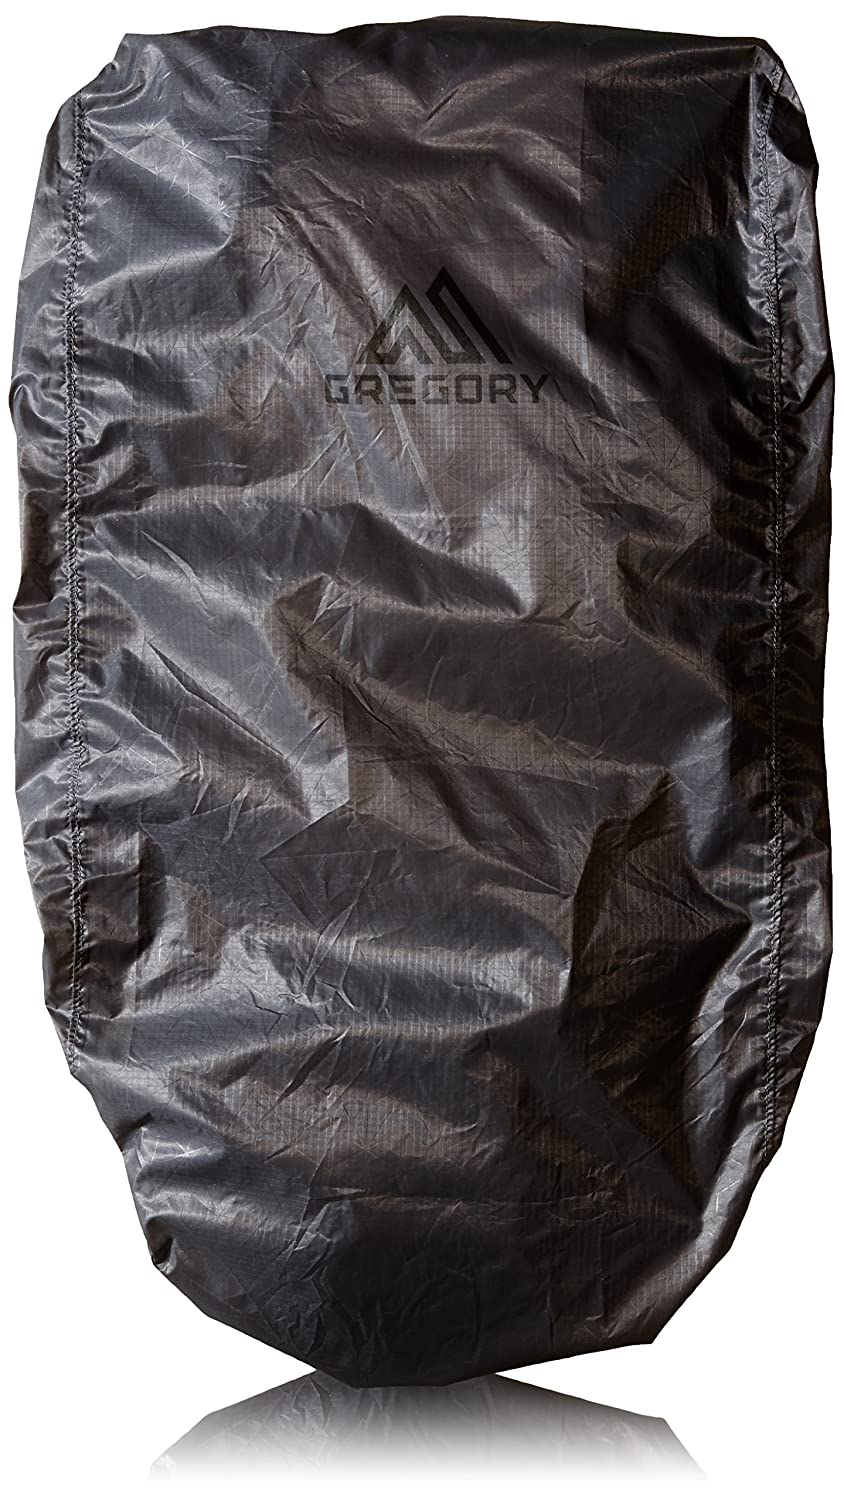 Gregory Mountain Products Pro Raincover, Web Grey, 35L-45L PRO RAINCOVER 35-45L